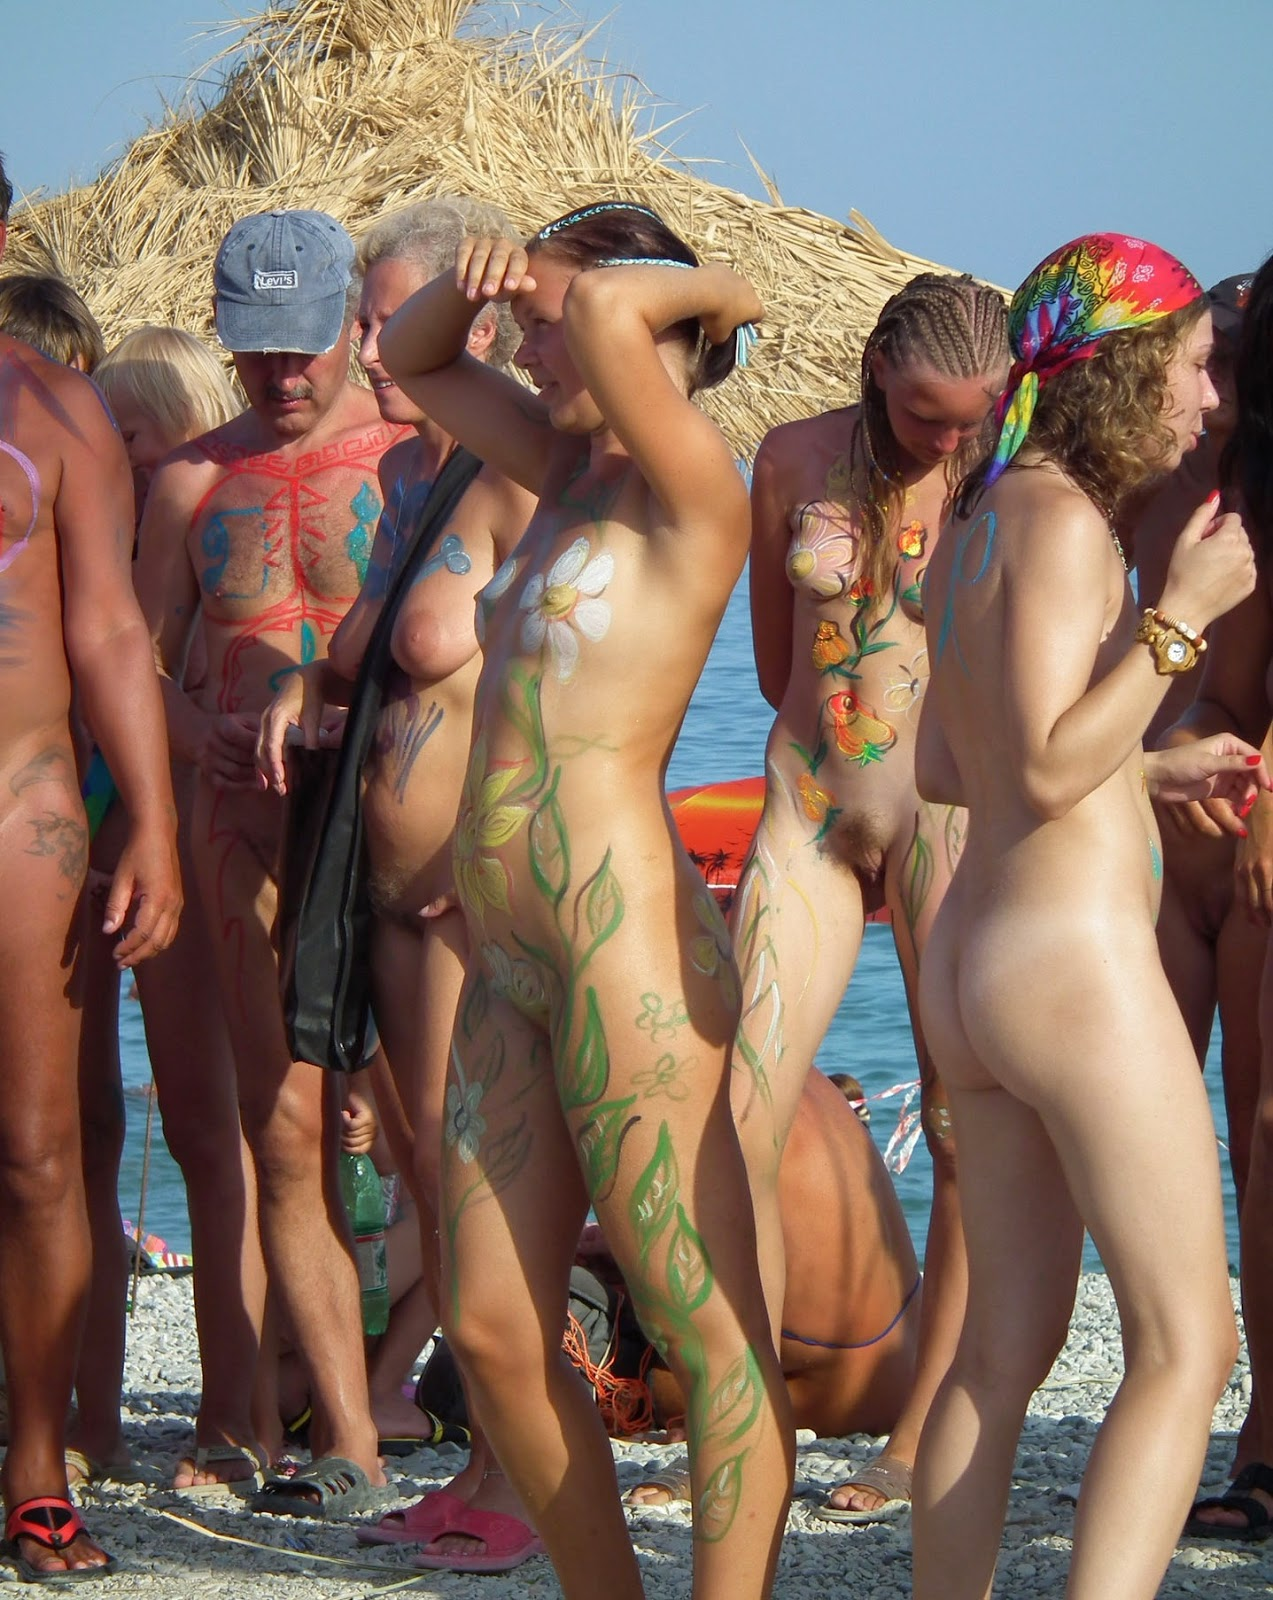 Family at nude beach not